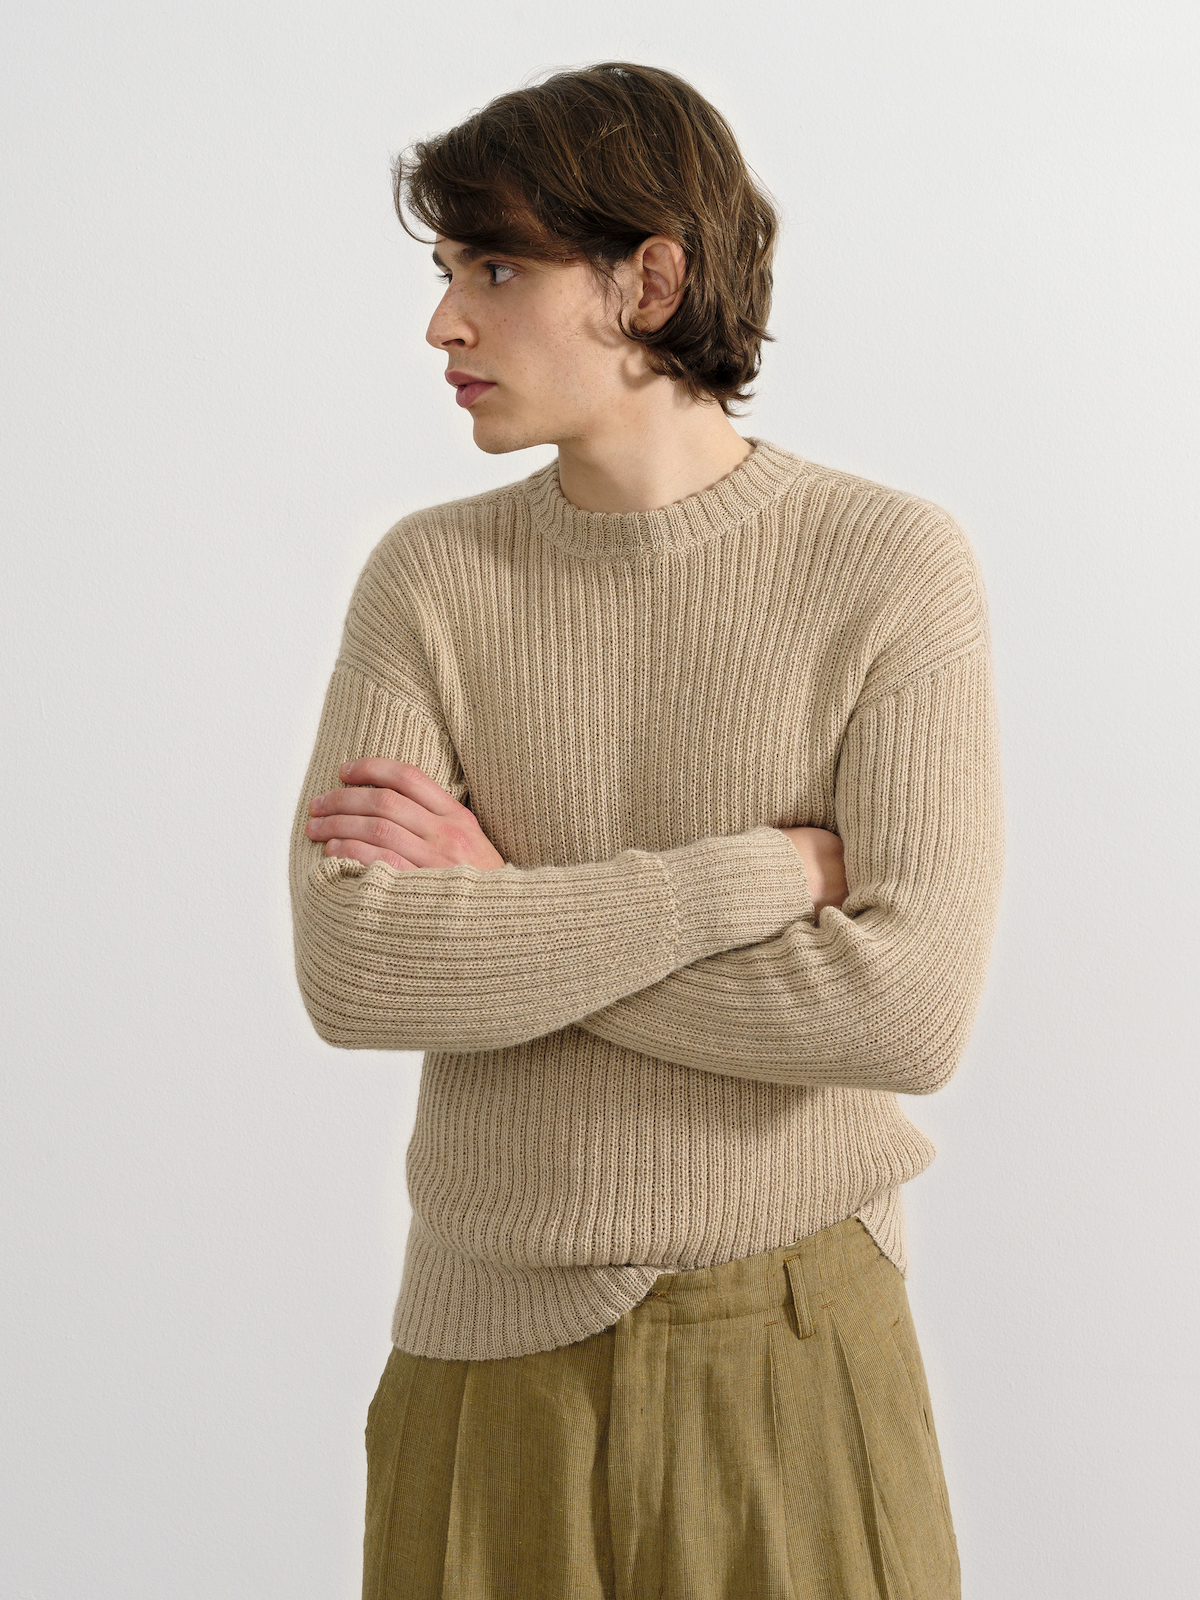 the Ribbed in Natural Beige| by Knitbrary